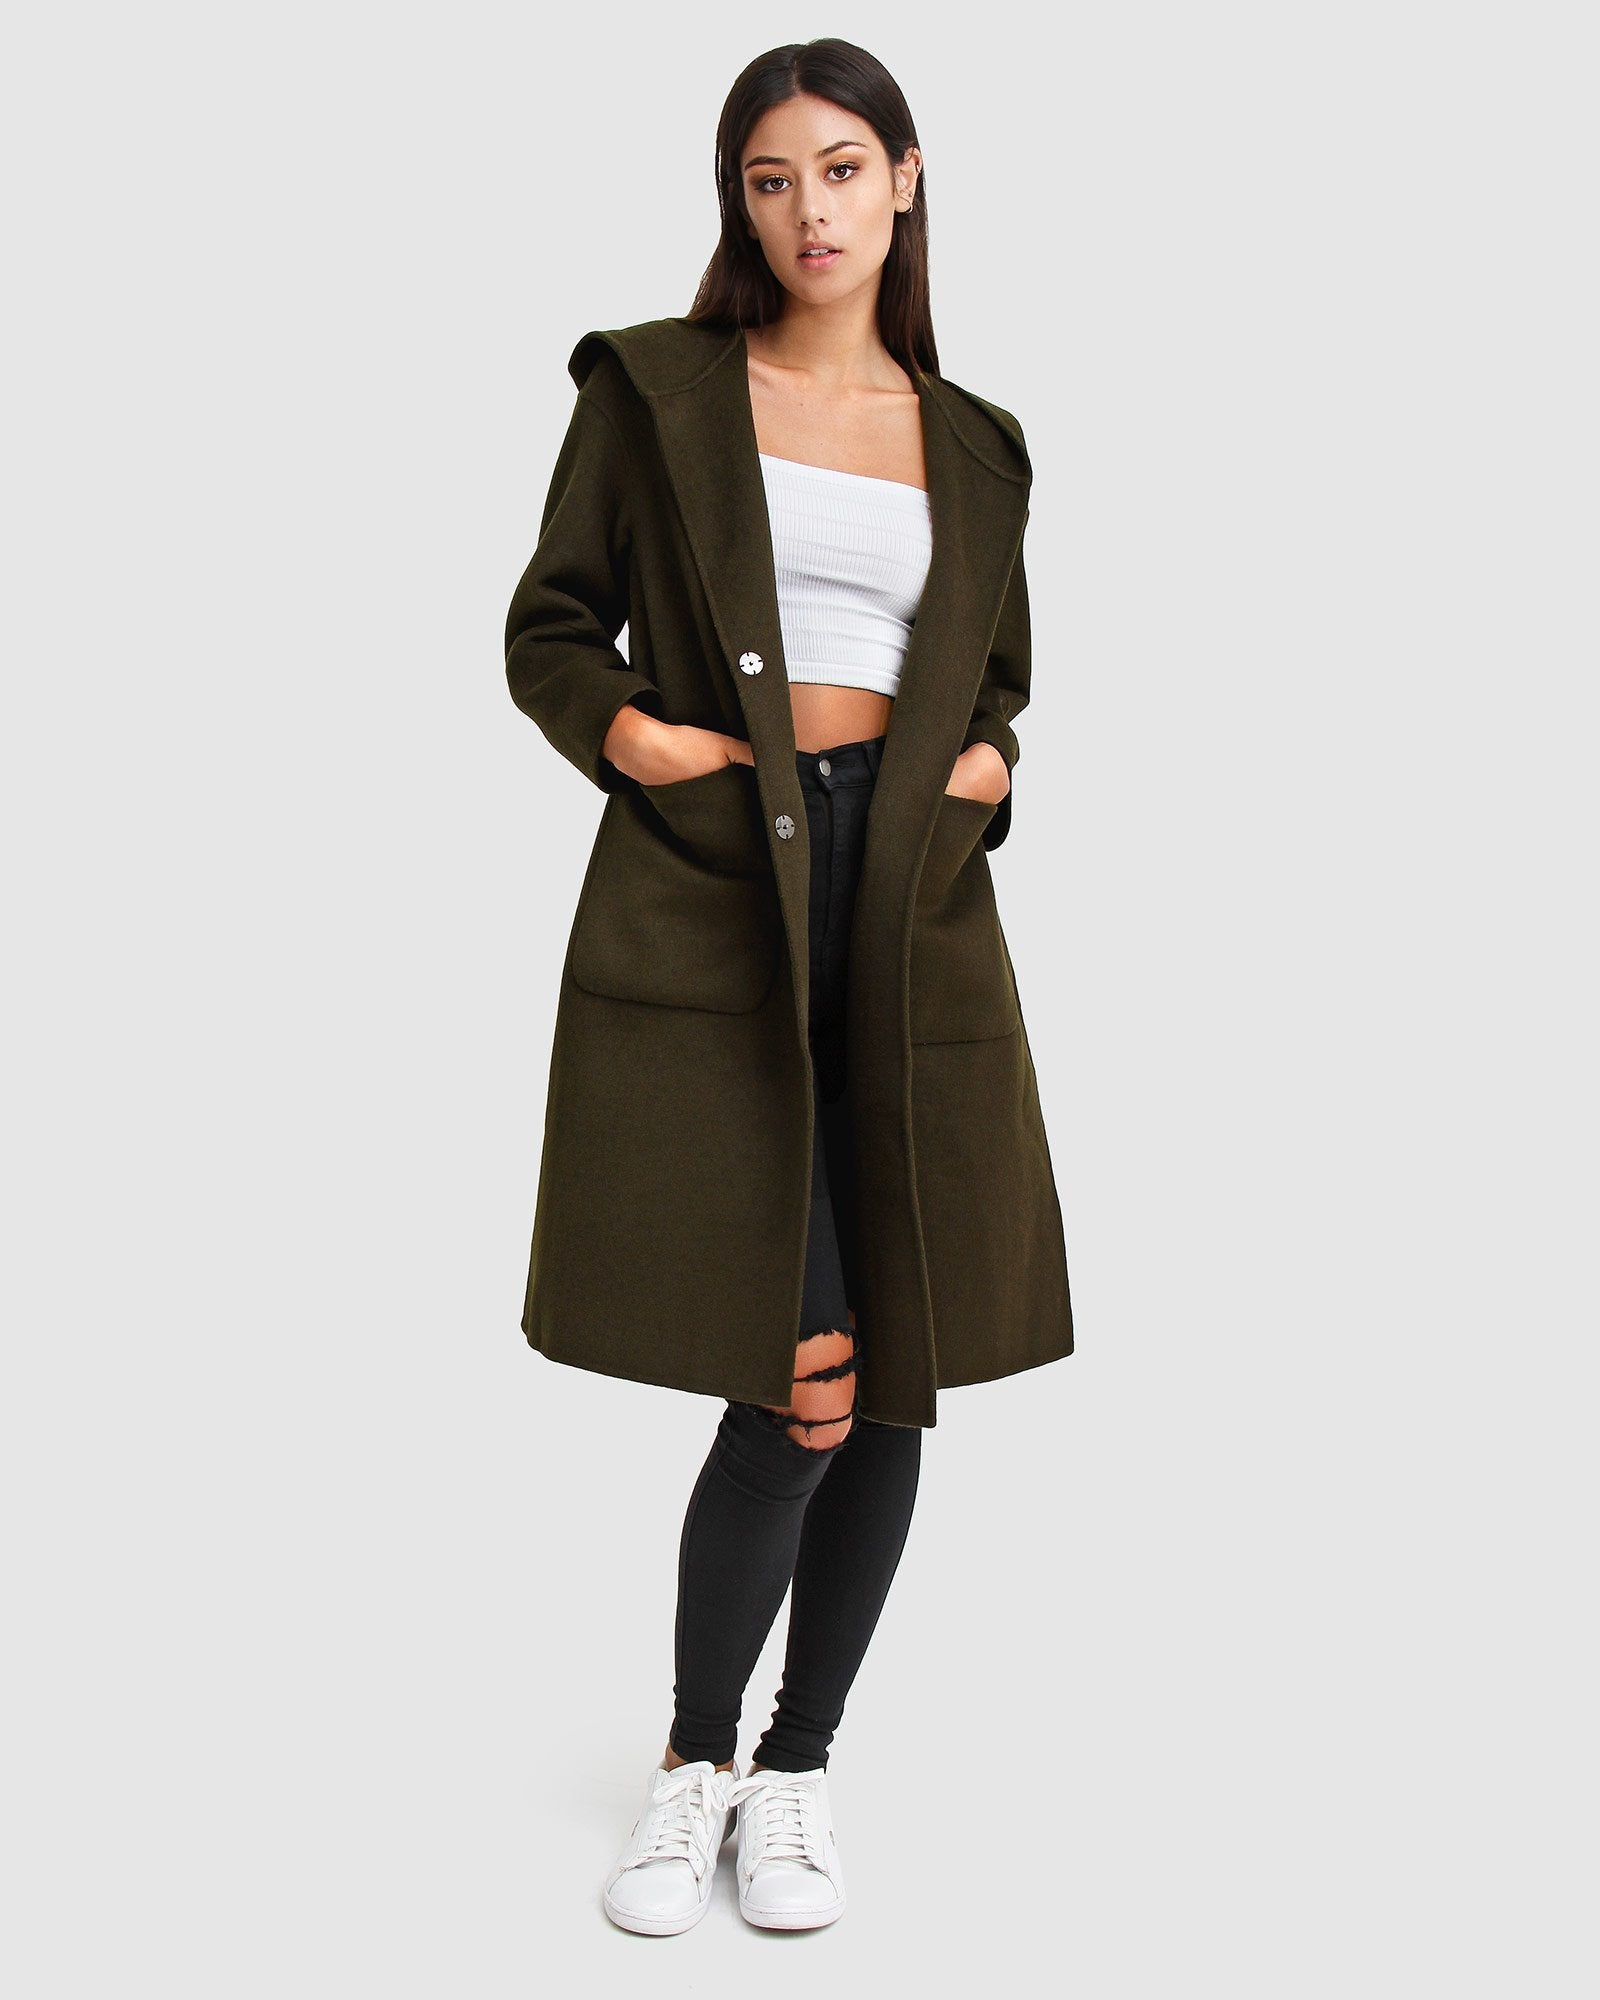 Walk This Way Wool Blend Oversized Coat - Military